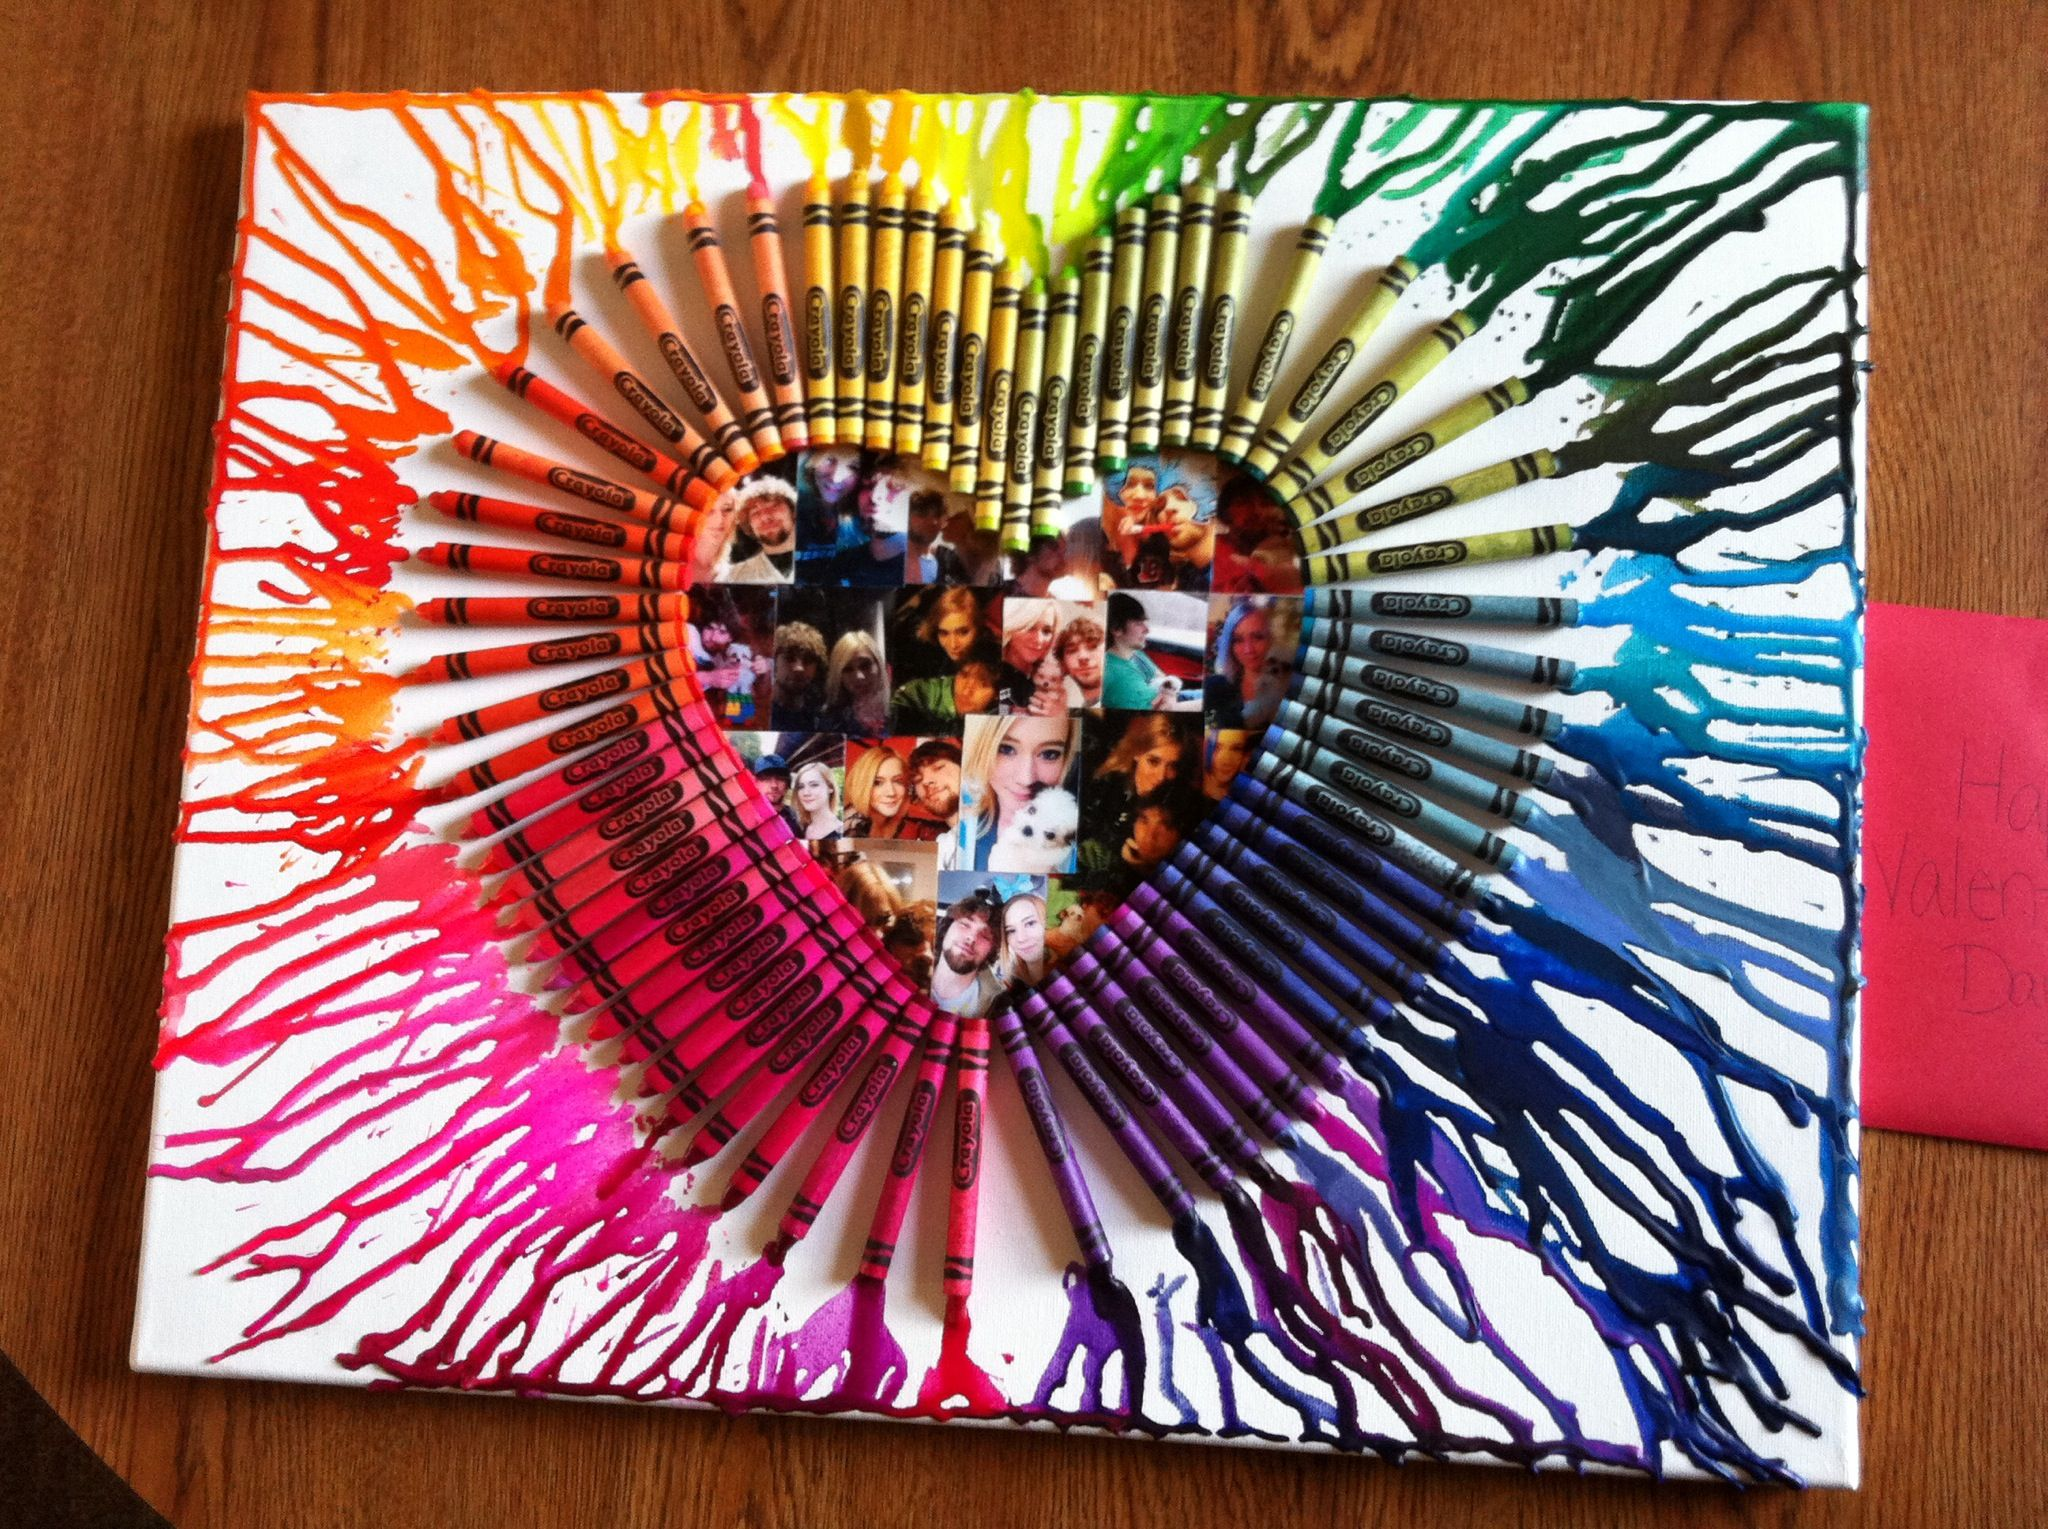 Melted Crayon Heart I Made For Valentines Day My Boyfriend All You Do Is Hot Glue Crayons Into A Shape On Canvas Then Melt Them With Blow Dryer